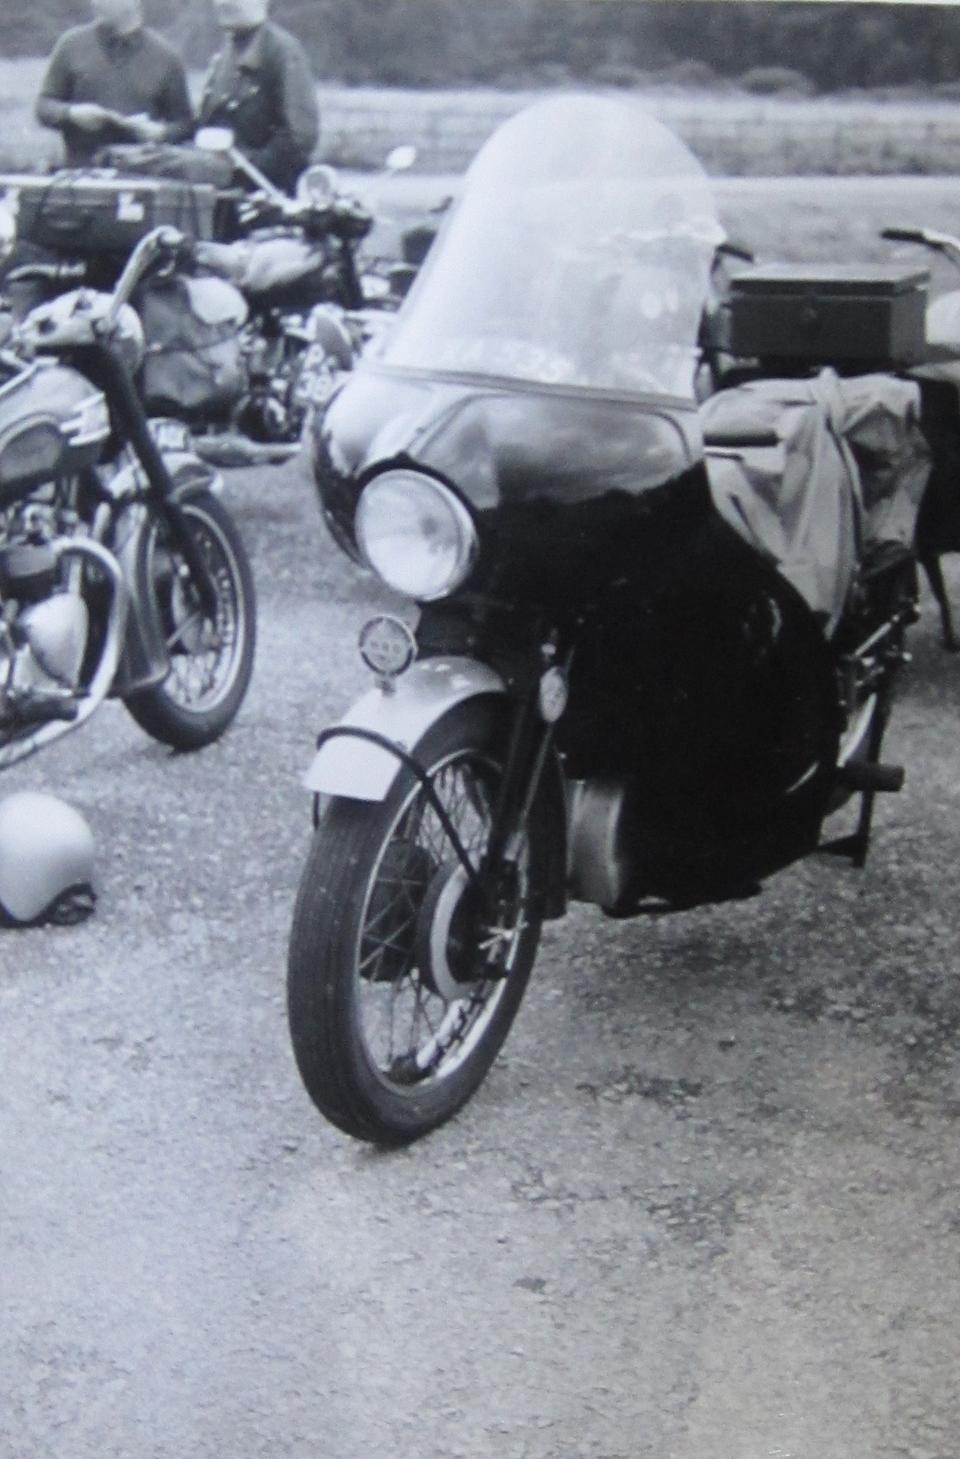 Two recorded keepers from new and single ownership for 50 years,1950 Vincent-HRD 998cc Rapide Series C Frame no. RC7285 Engine no. F10AB/1/5385